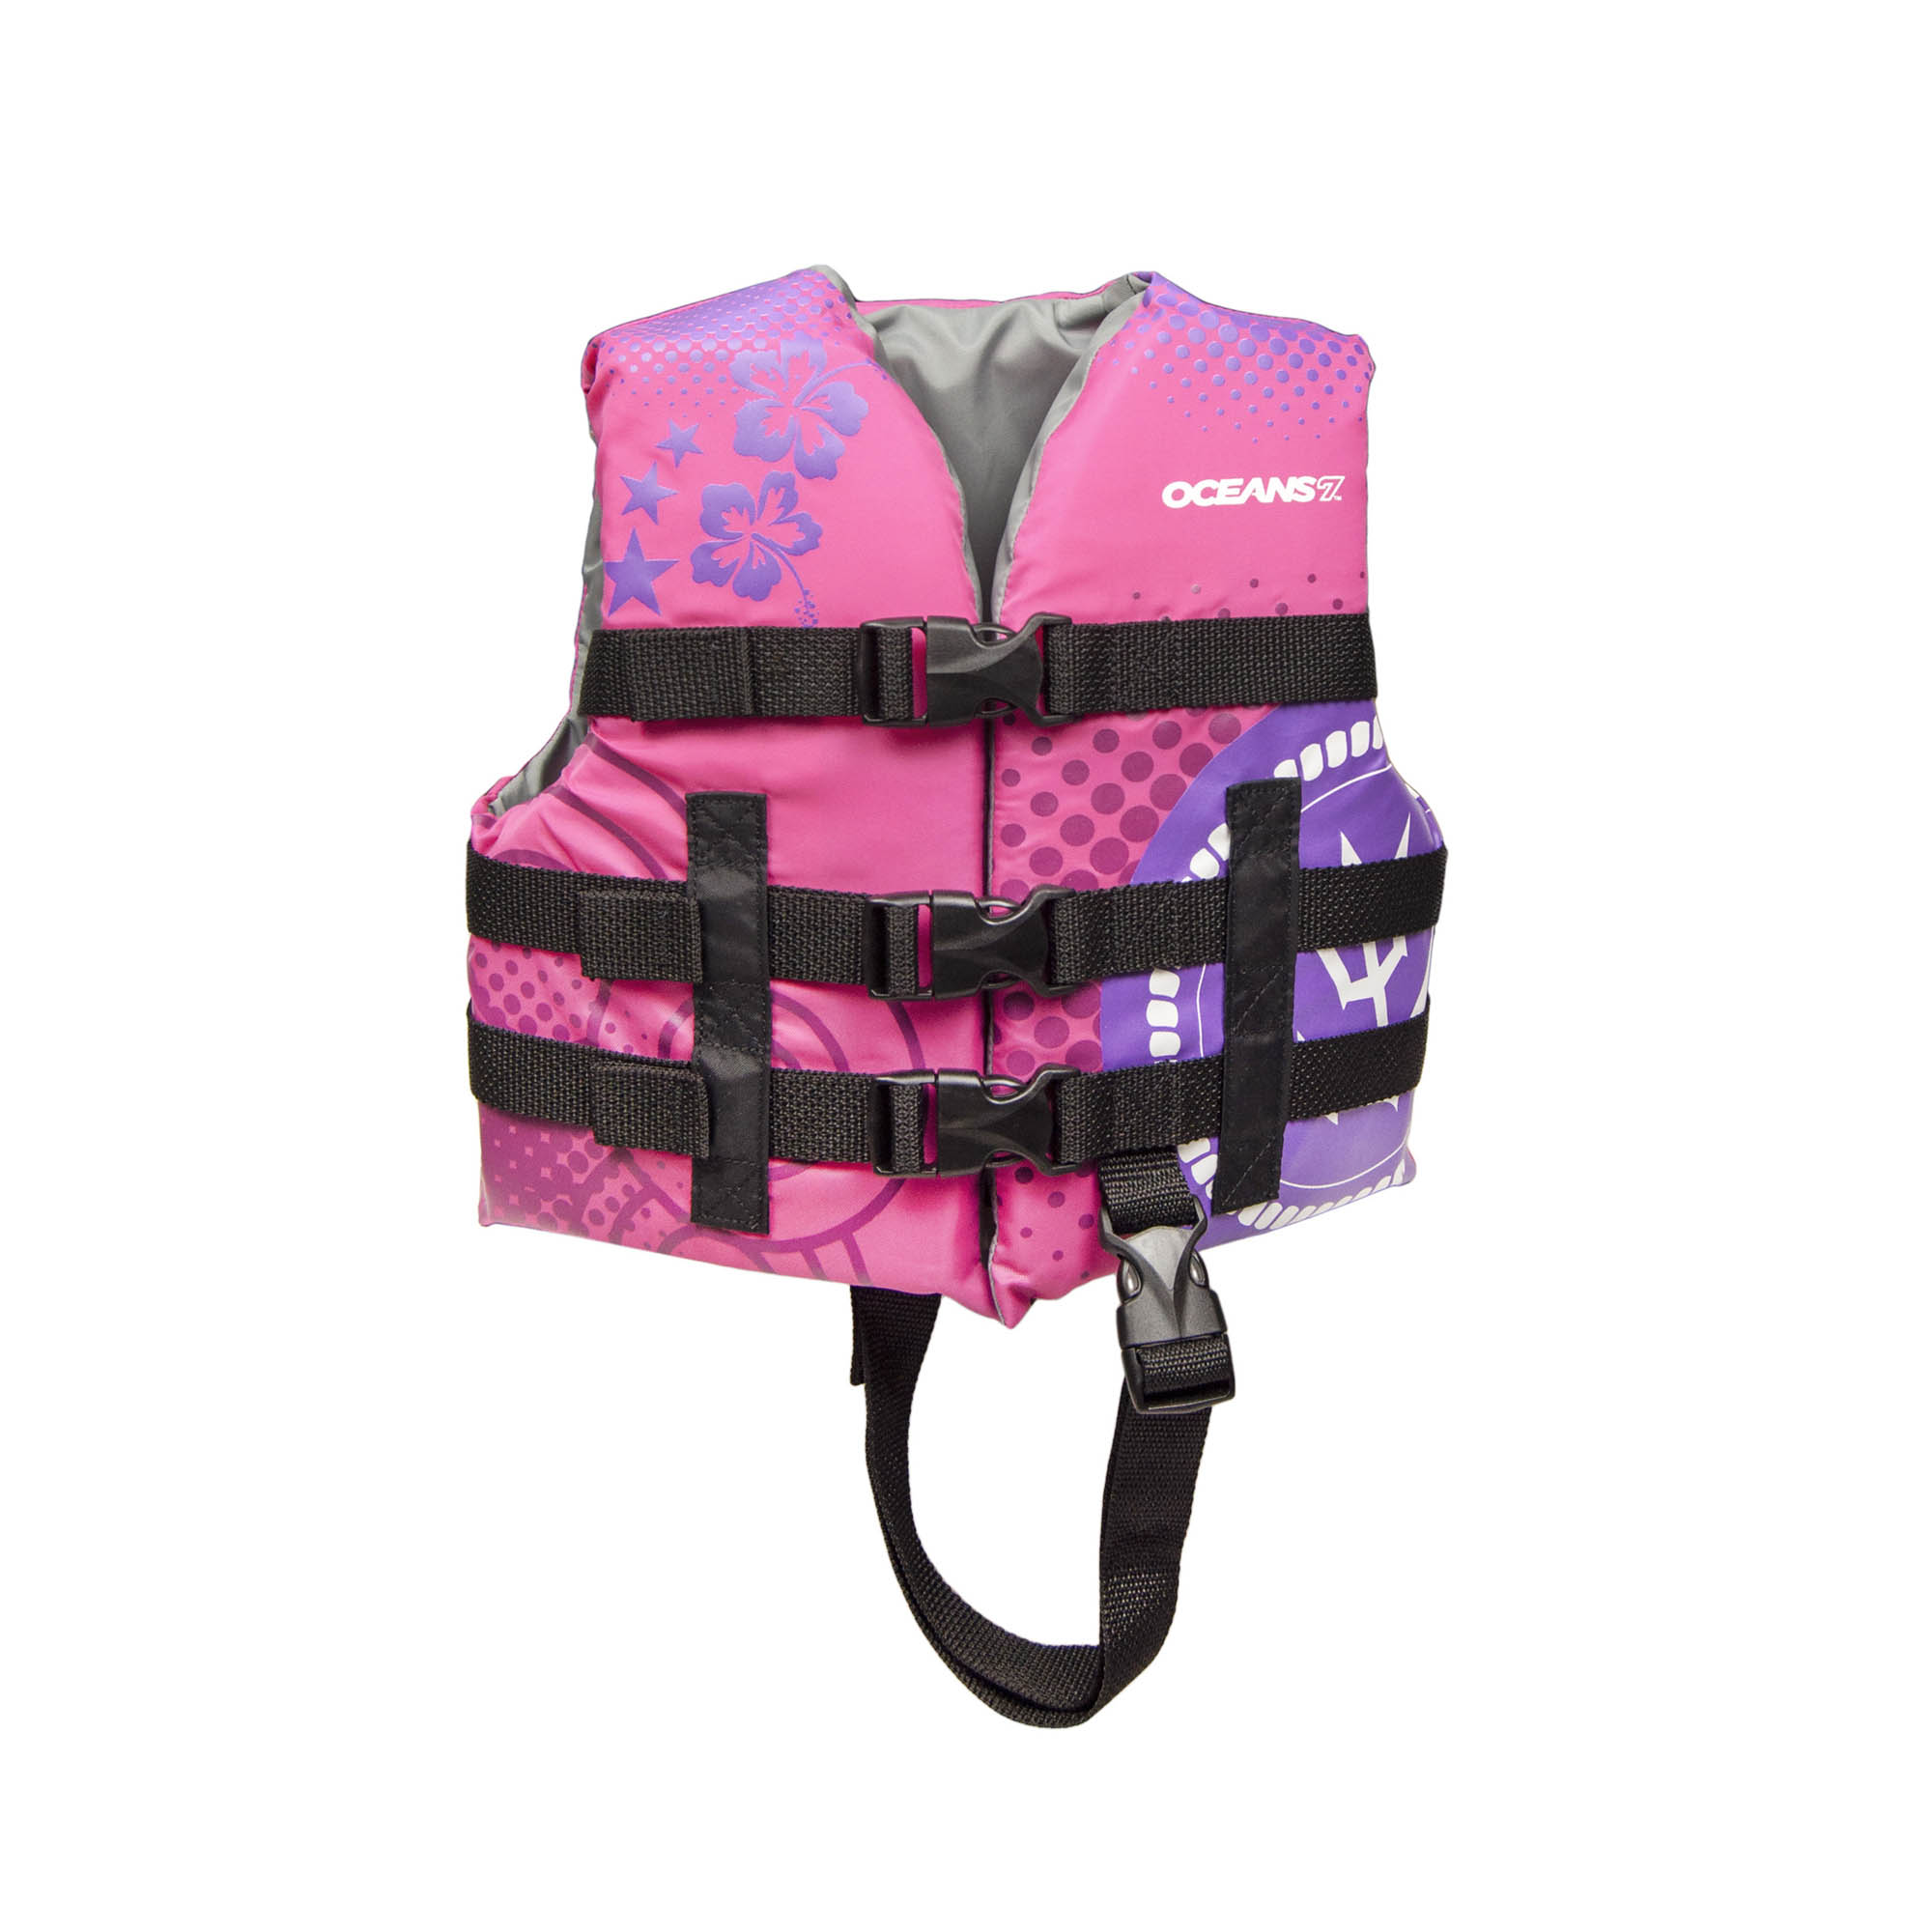 Oceans 7 USCGA 3 Buckle Youth Life Vest, Oxford Child, Raspberry by AQUA LEISURE IND.